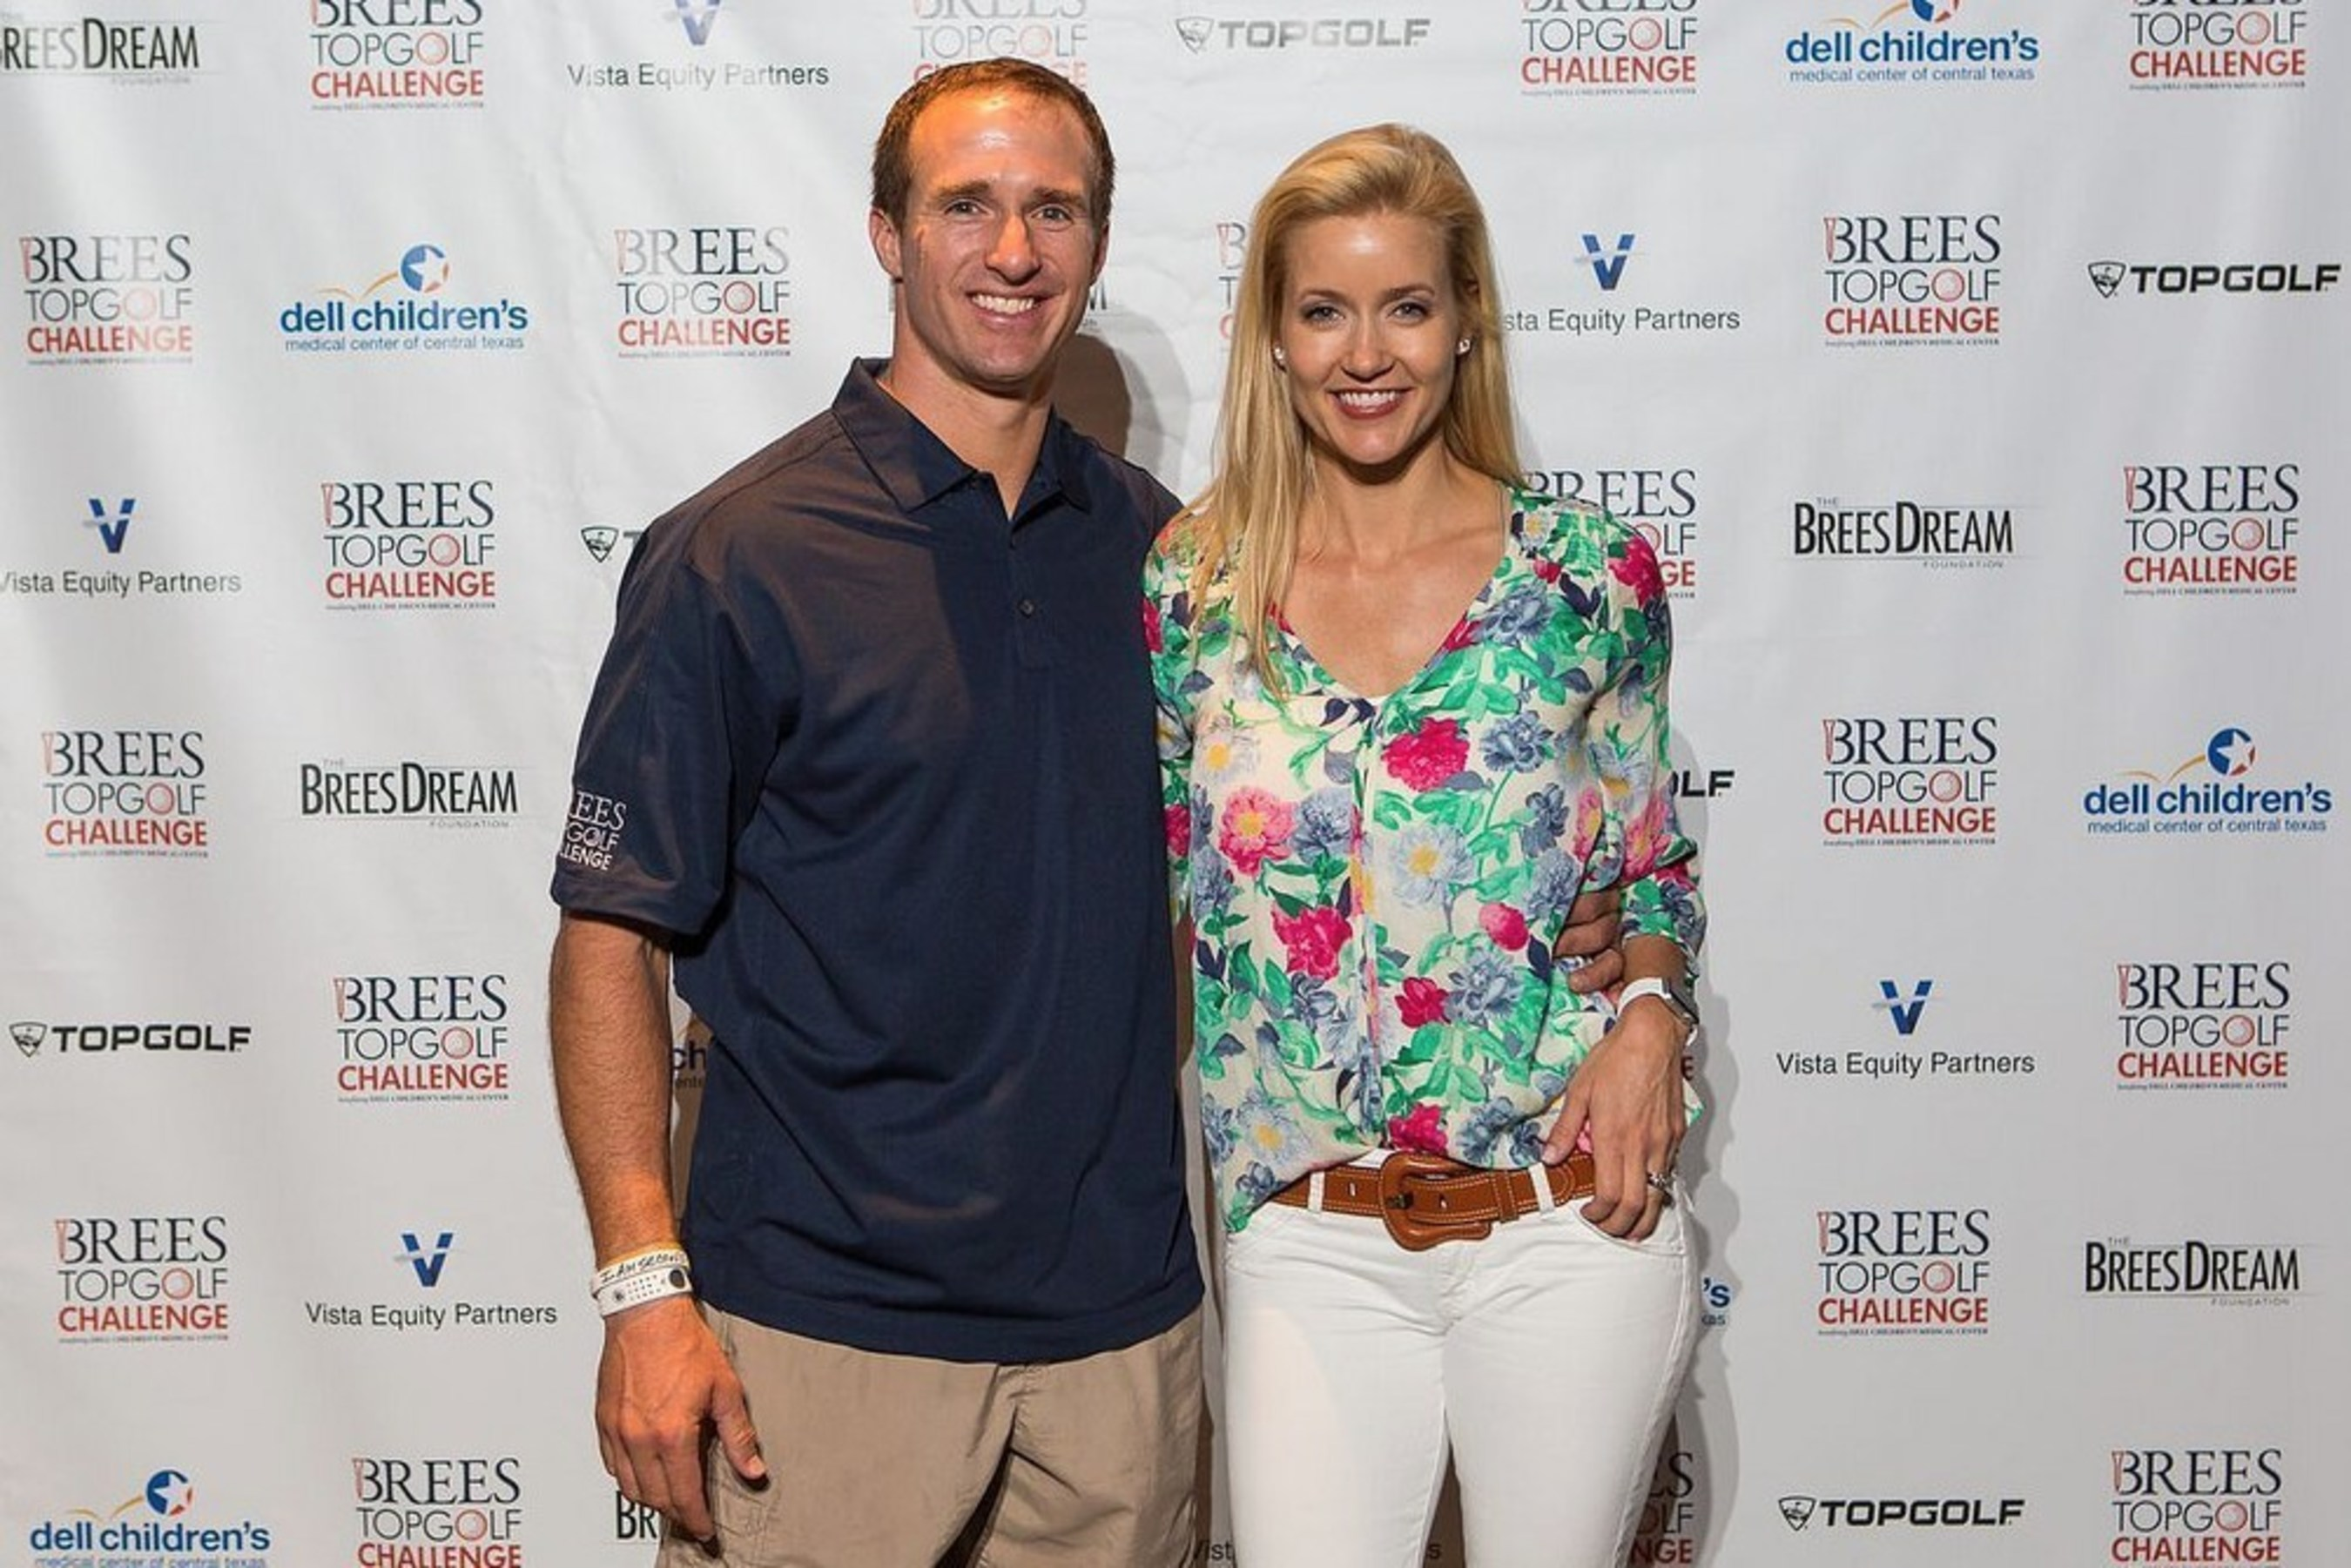 Drew Brees, Topgolf Team Up for Second Annual Fundraiser Benefiting Dell Children's Medical Center